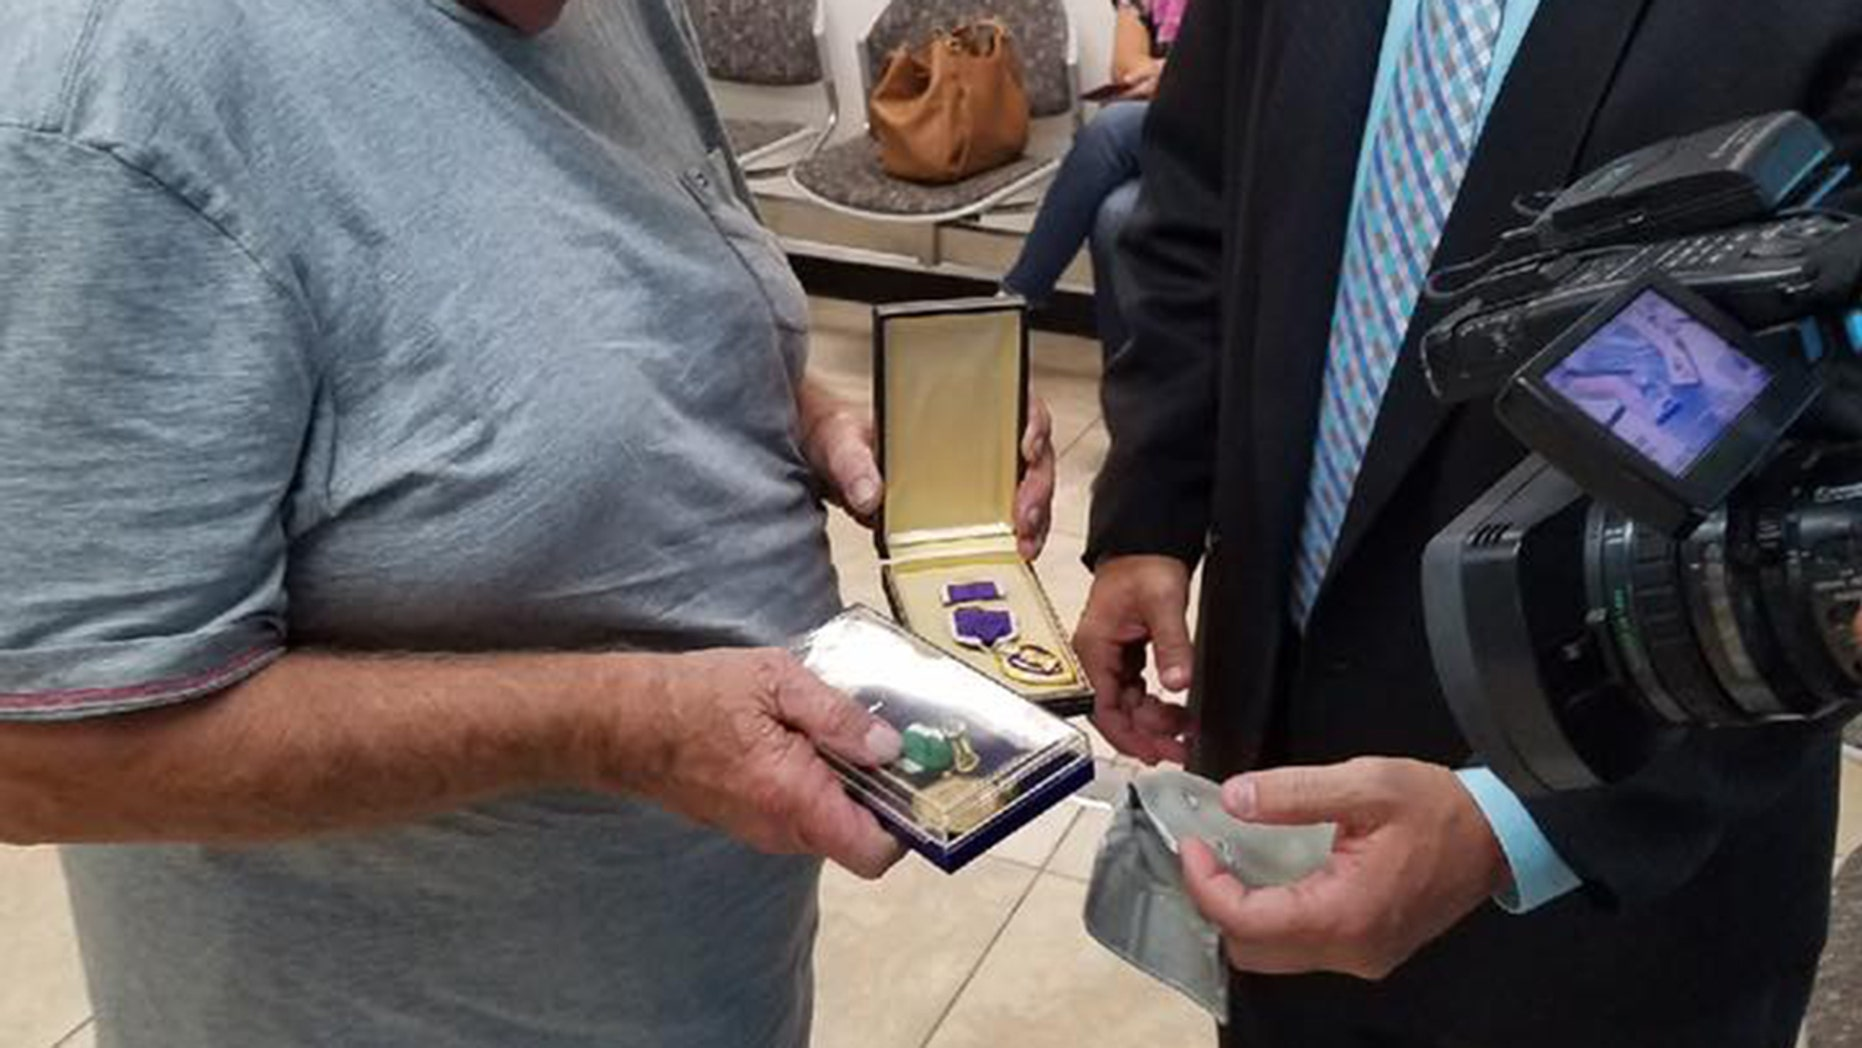 A Vietnam veteran was reunited with his war medals after they were stumbled across by another veteran.